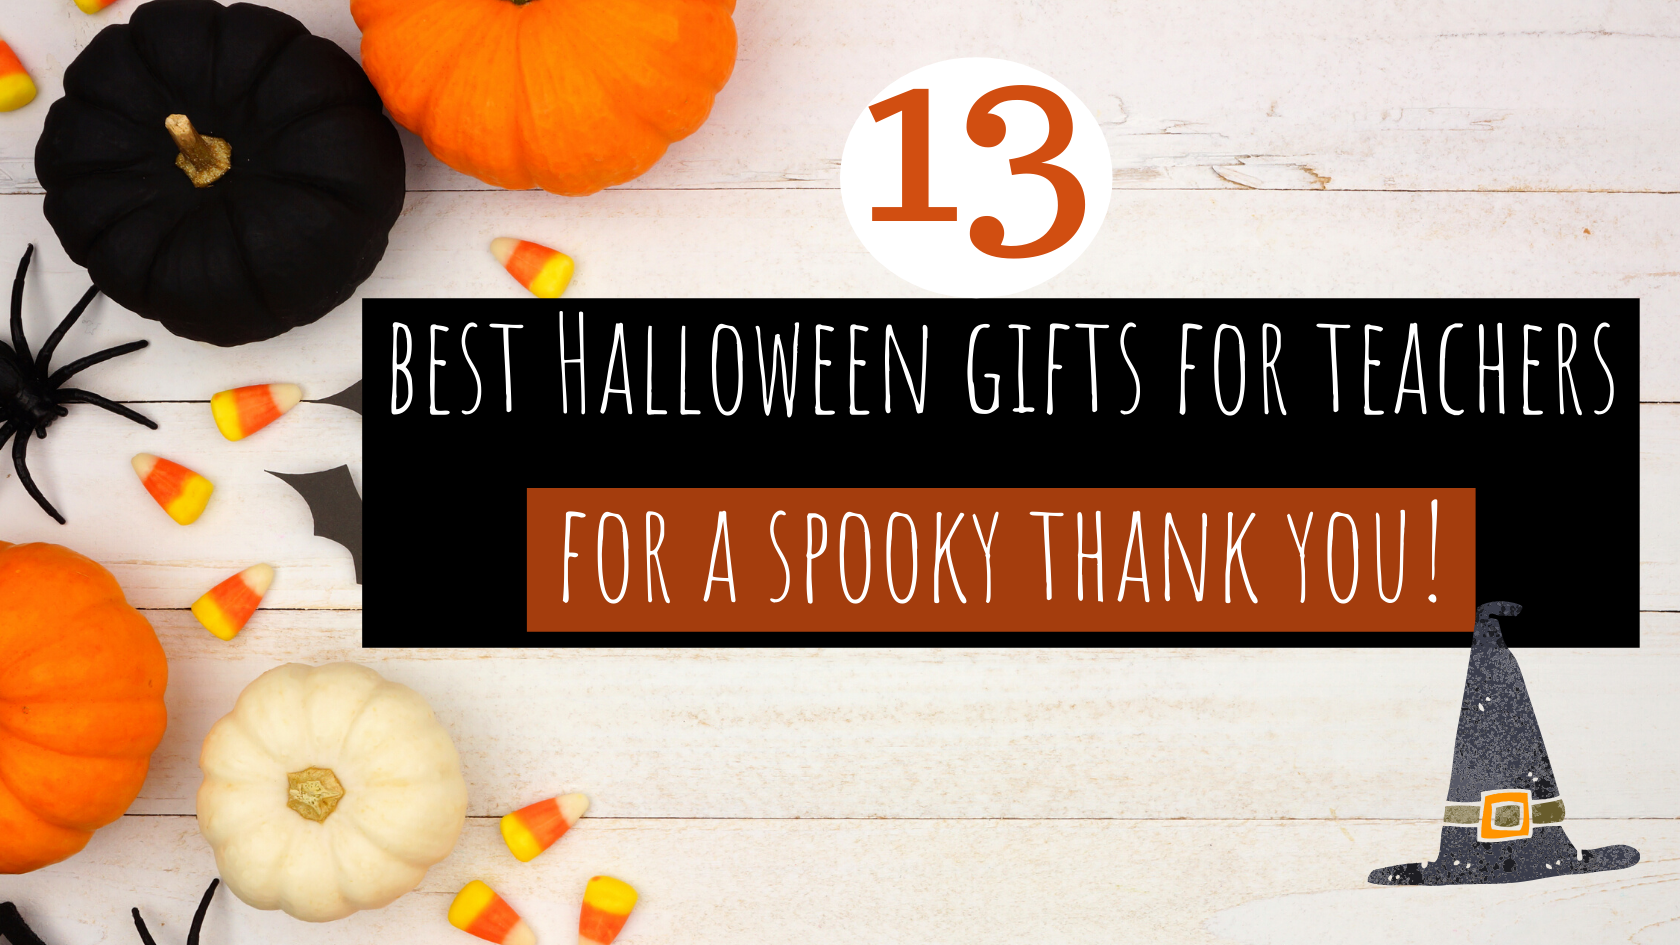 13 Best Halloween Gifts for Teachers for a Spooky Thank You!